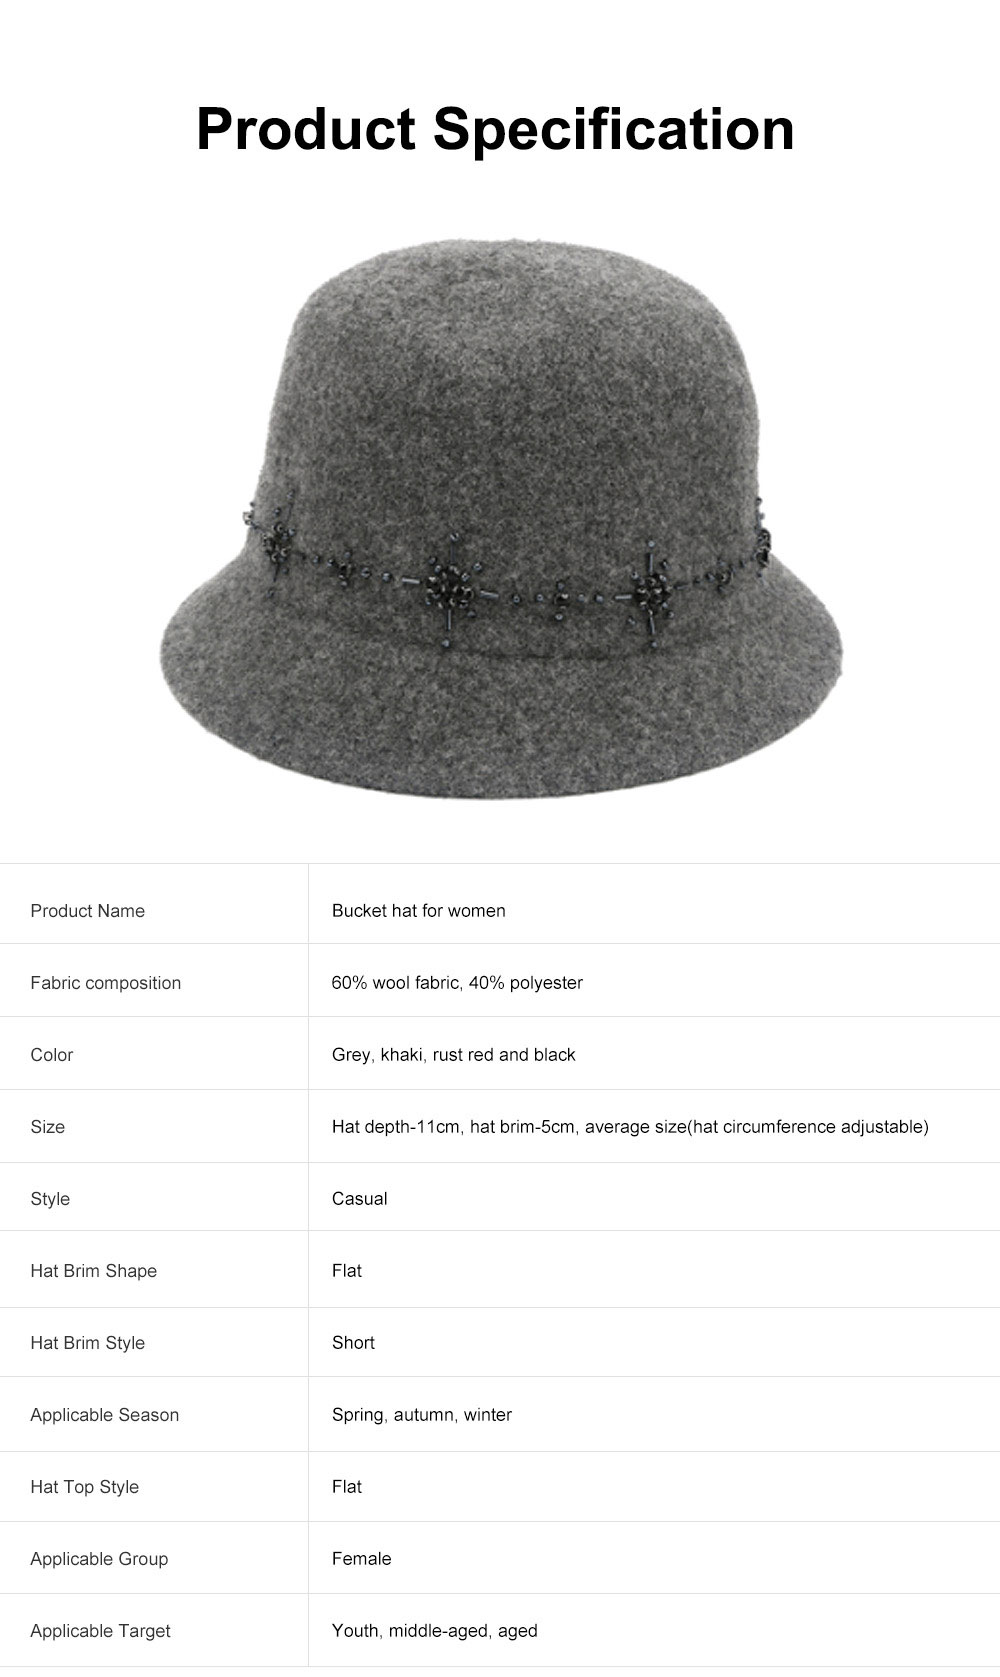 British Style Thermal Bucket Hat for Women Autumn Winter Wool-made Vintage Top Hat Round Top Revers Bowler Hat 6